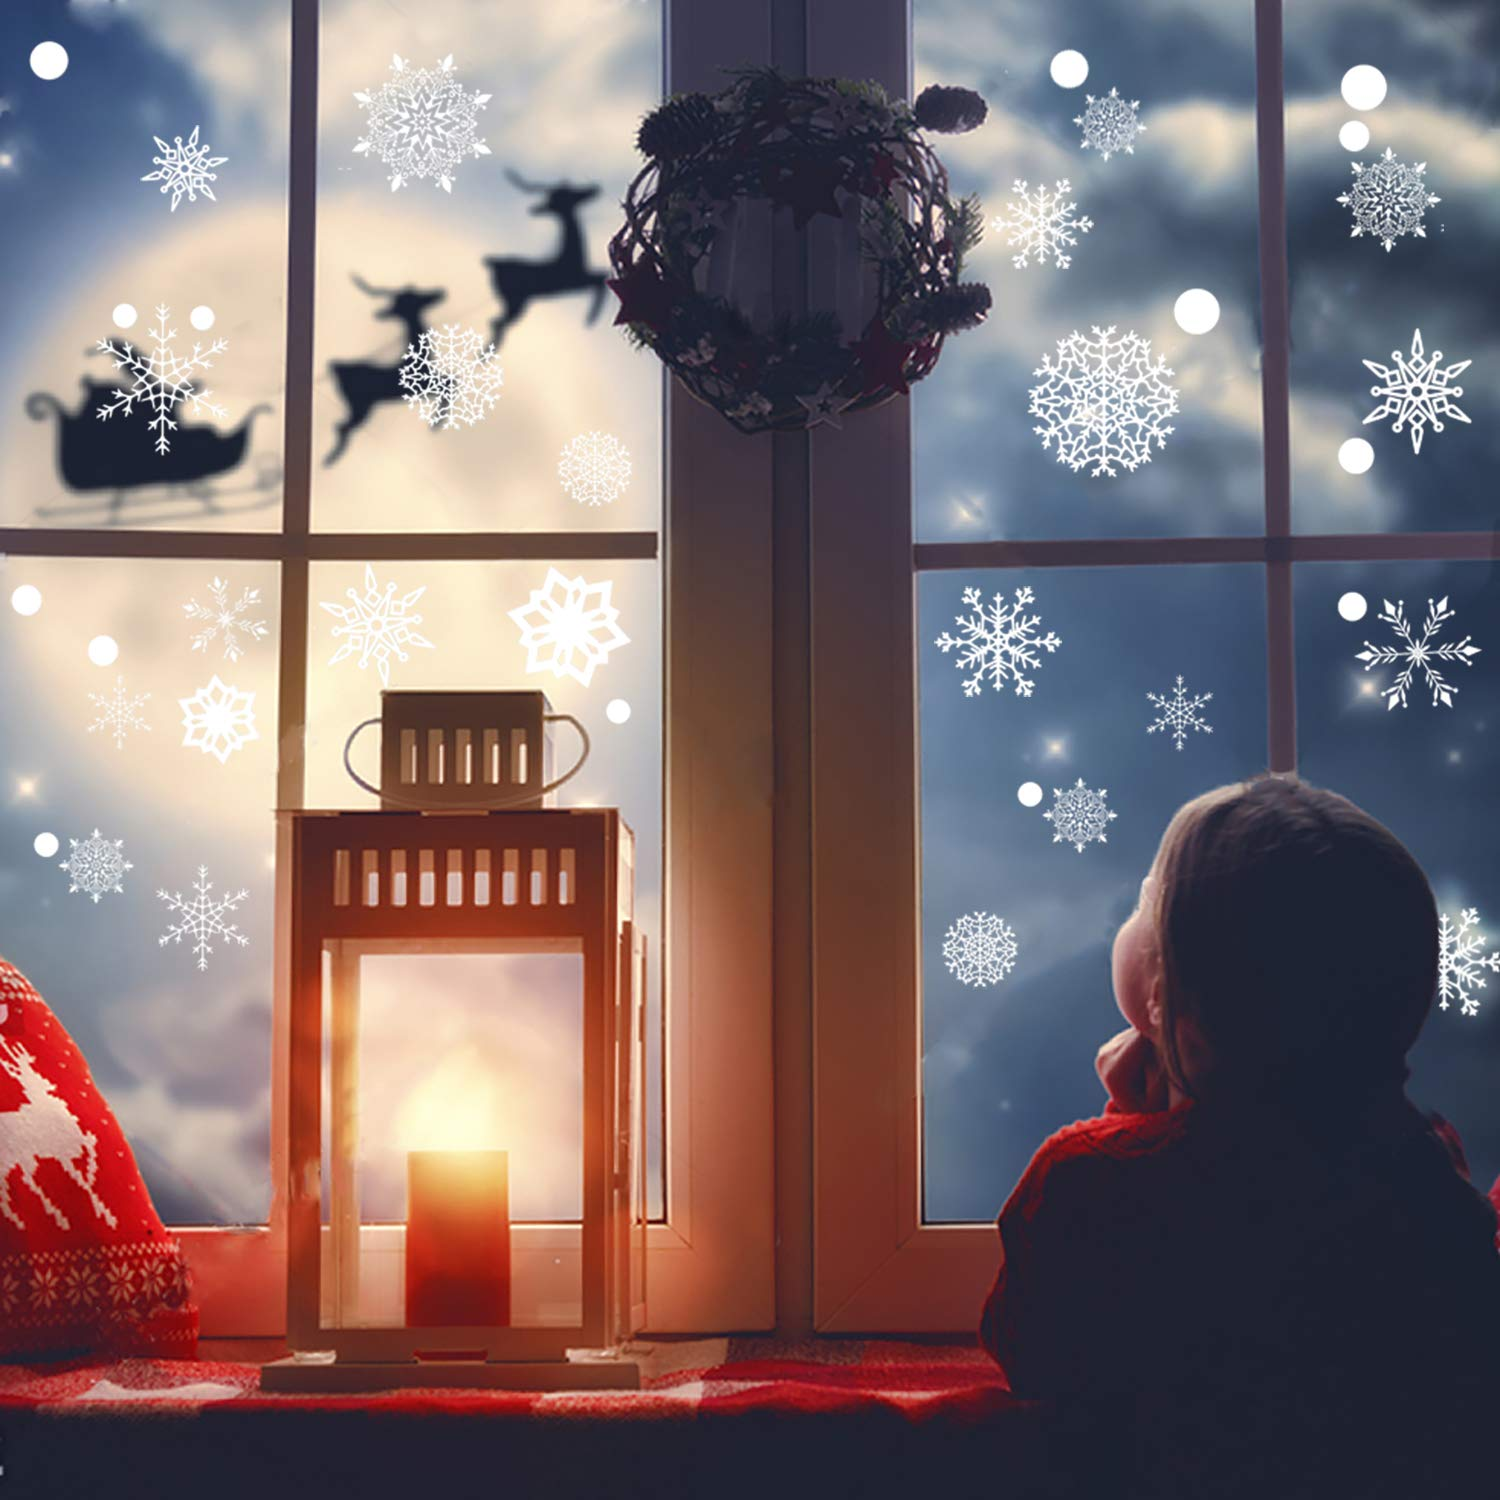 BEYUMI 250+ 8 Sheets Snowflakes Window Clings PVC Winter Decal Stickers for Christmas Decorations Winter Ornaments Xmas Party Stickers